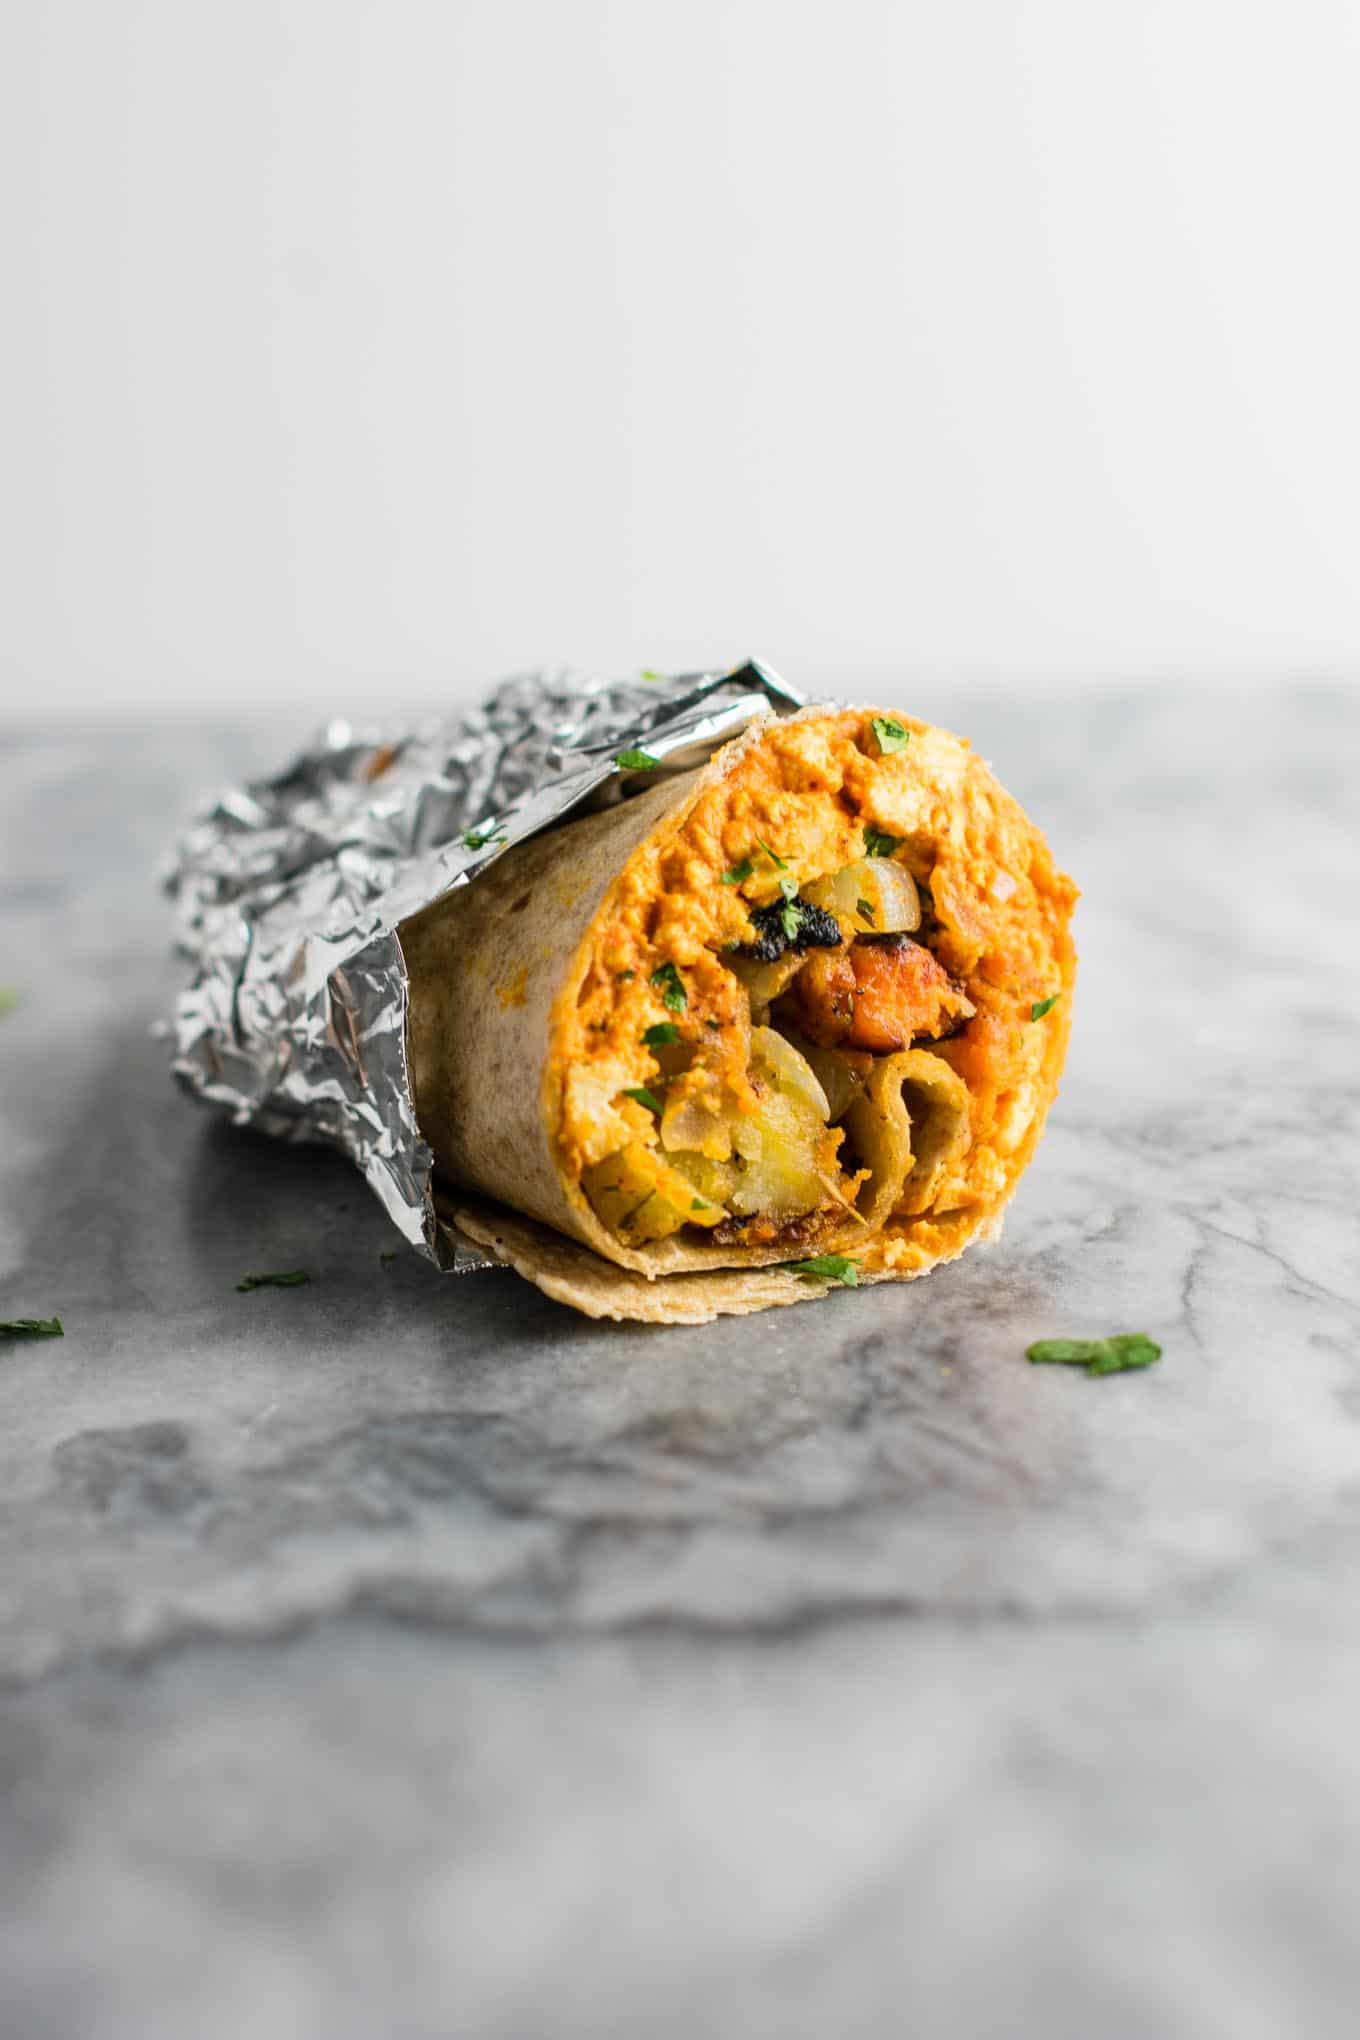 Tvegan breakfast burrito